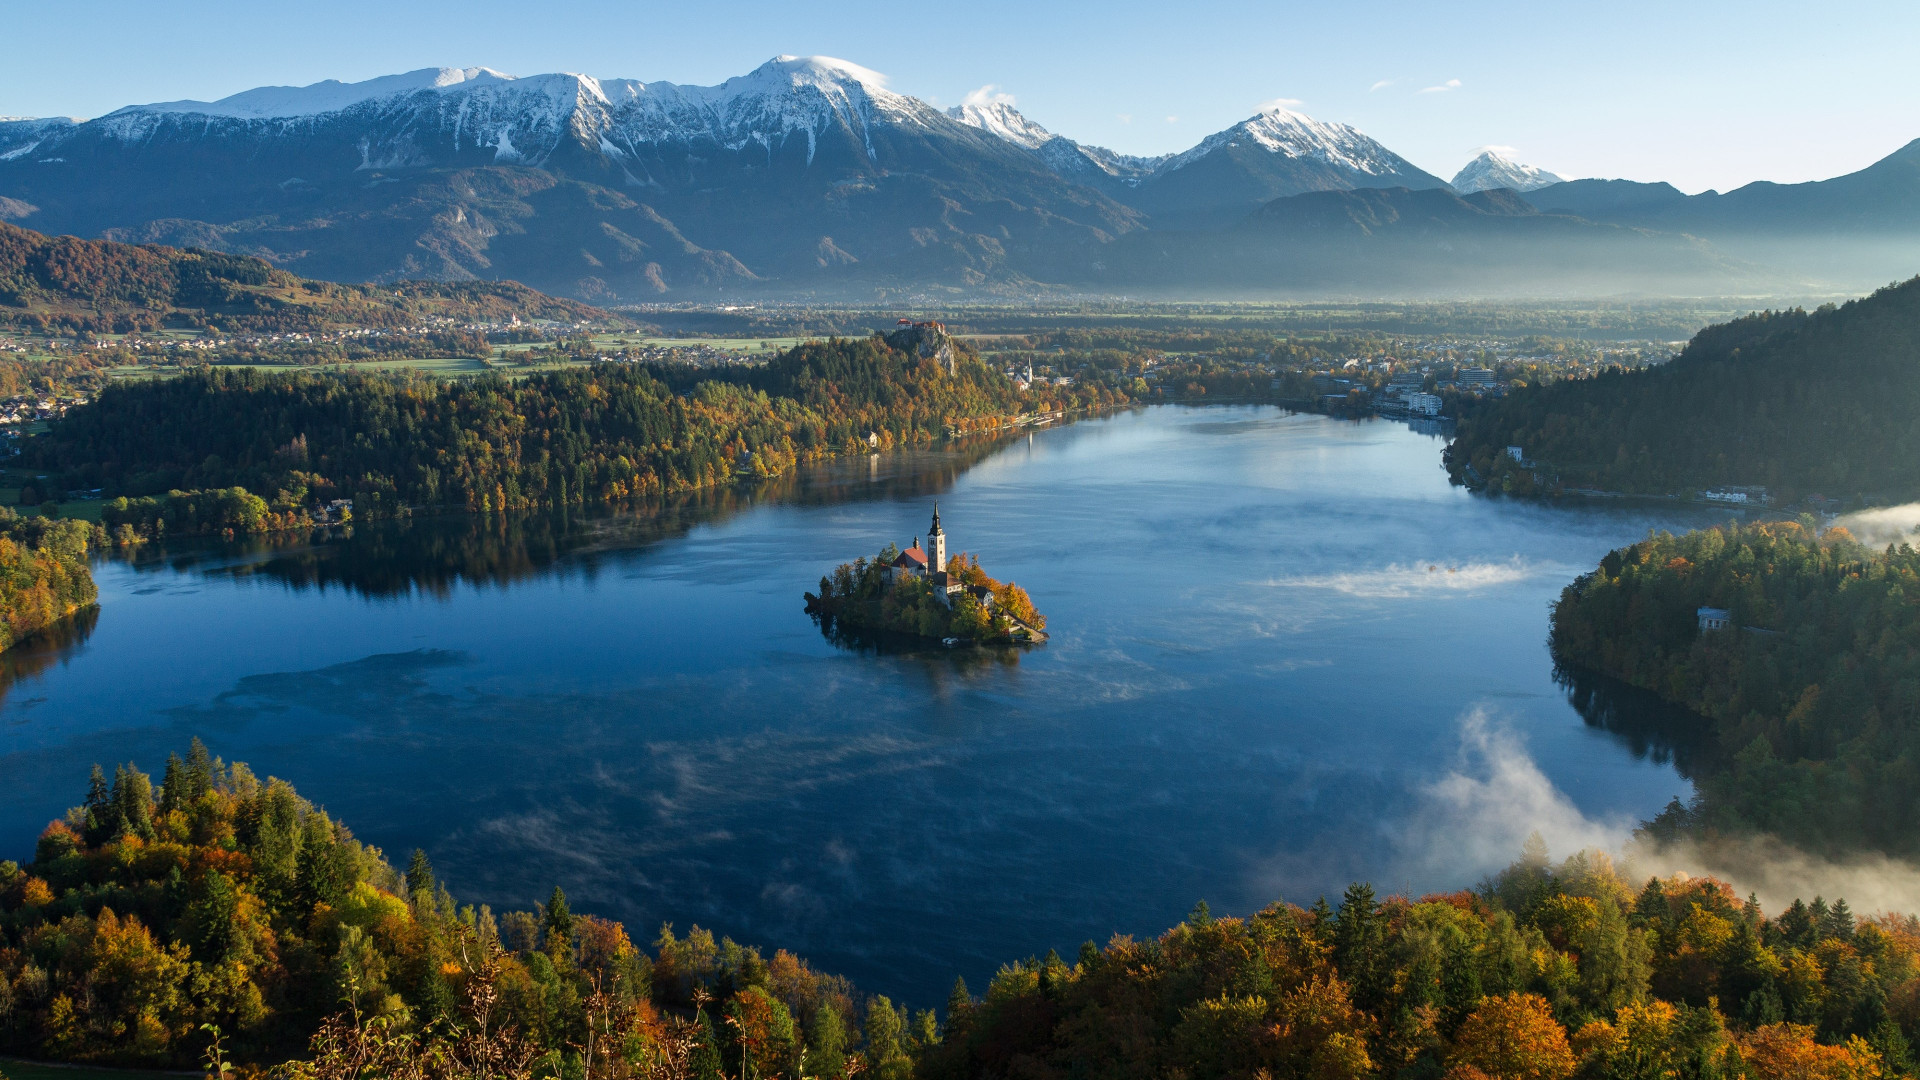 Best landscape from Bled, Slovenia wallpaper 1920x1080